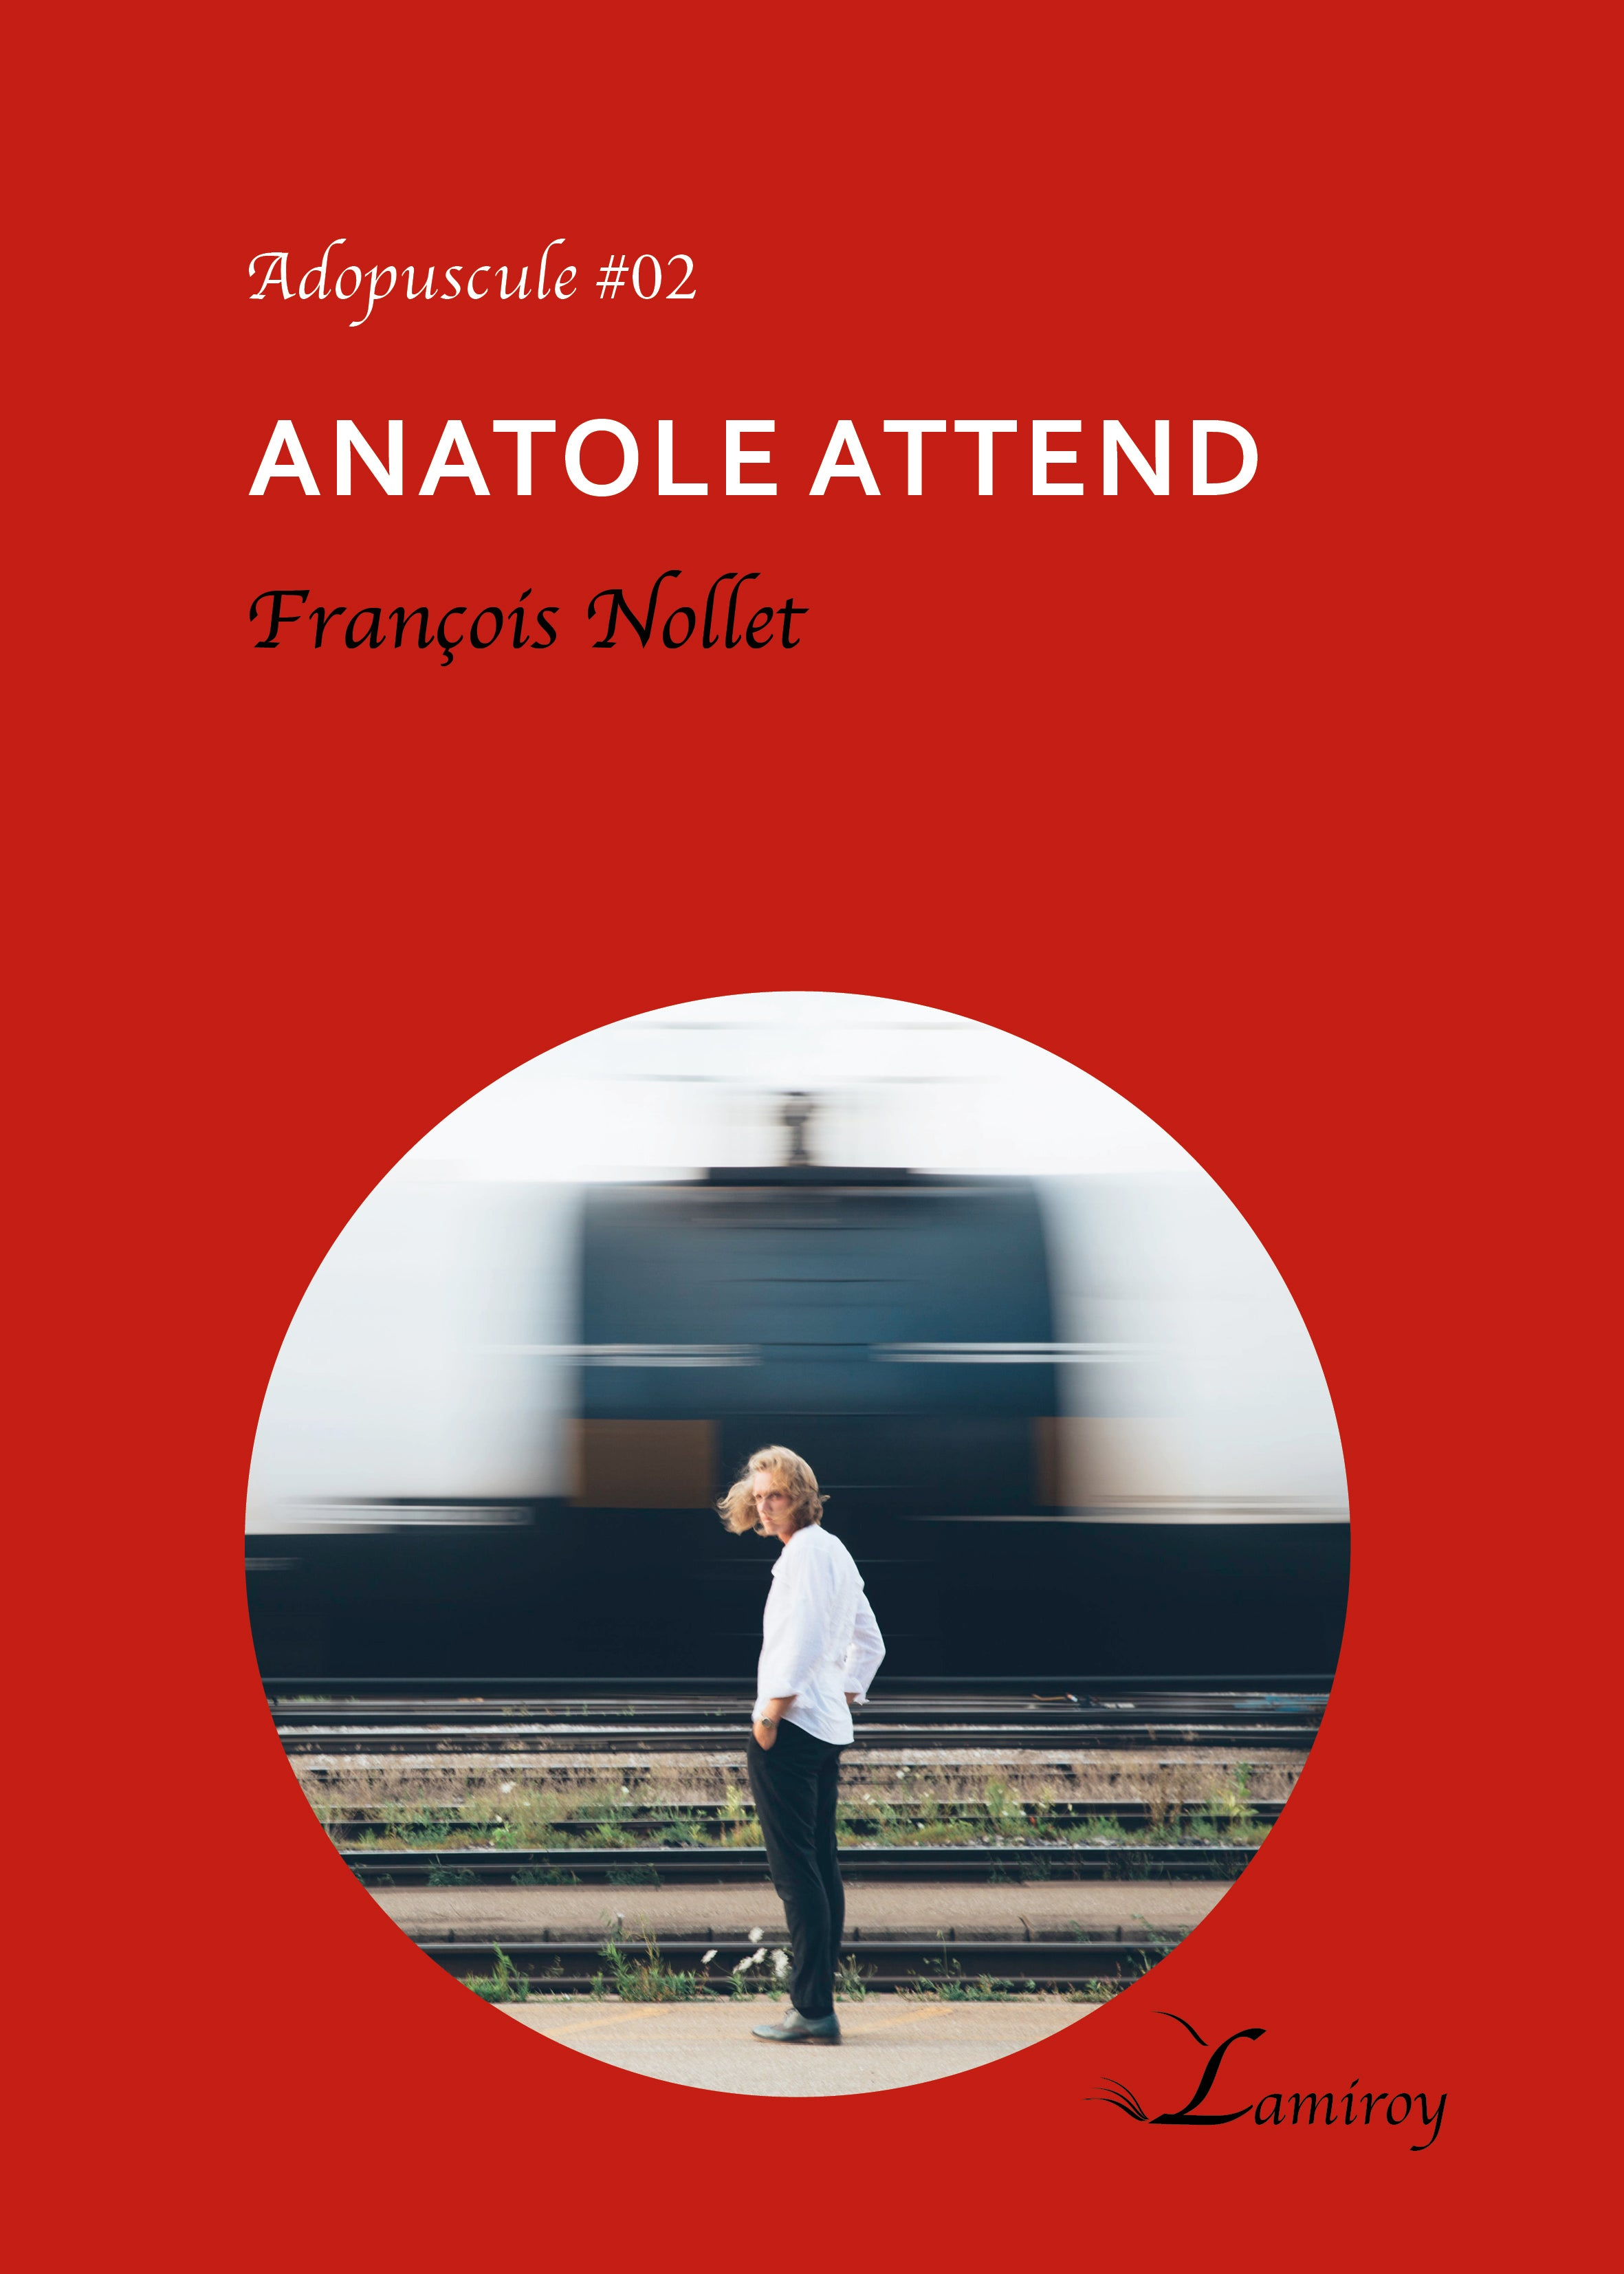 Anatole attend A#02